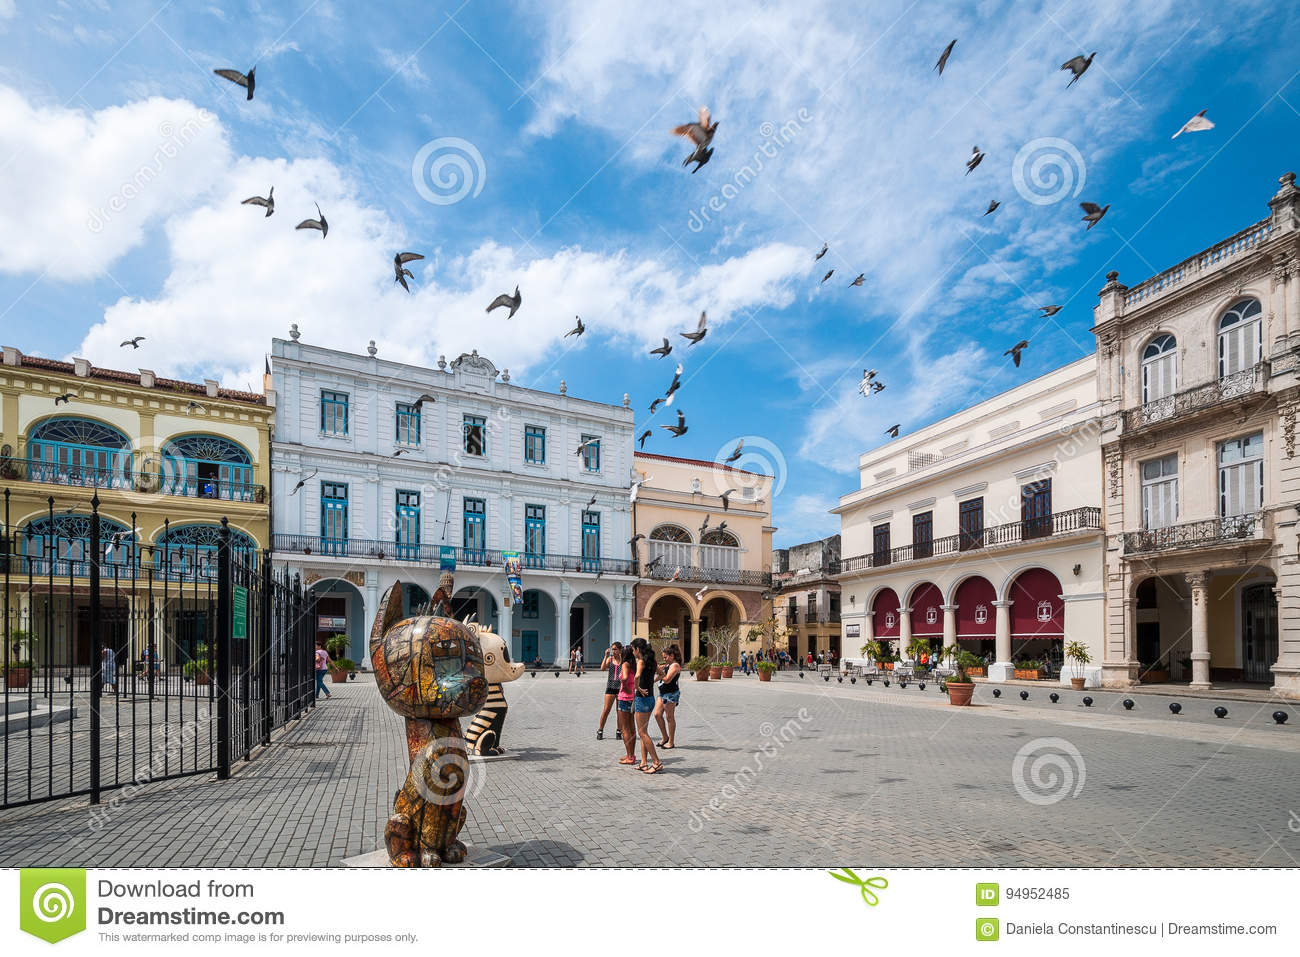 Havana Old Square or Plaza Vieja